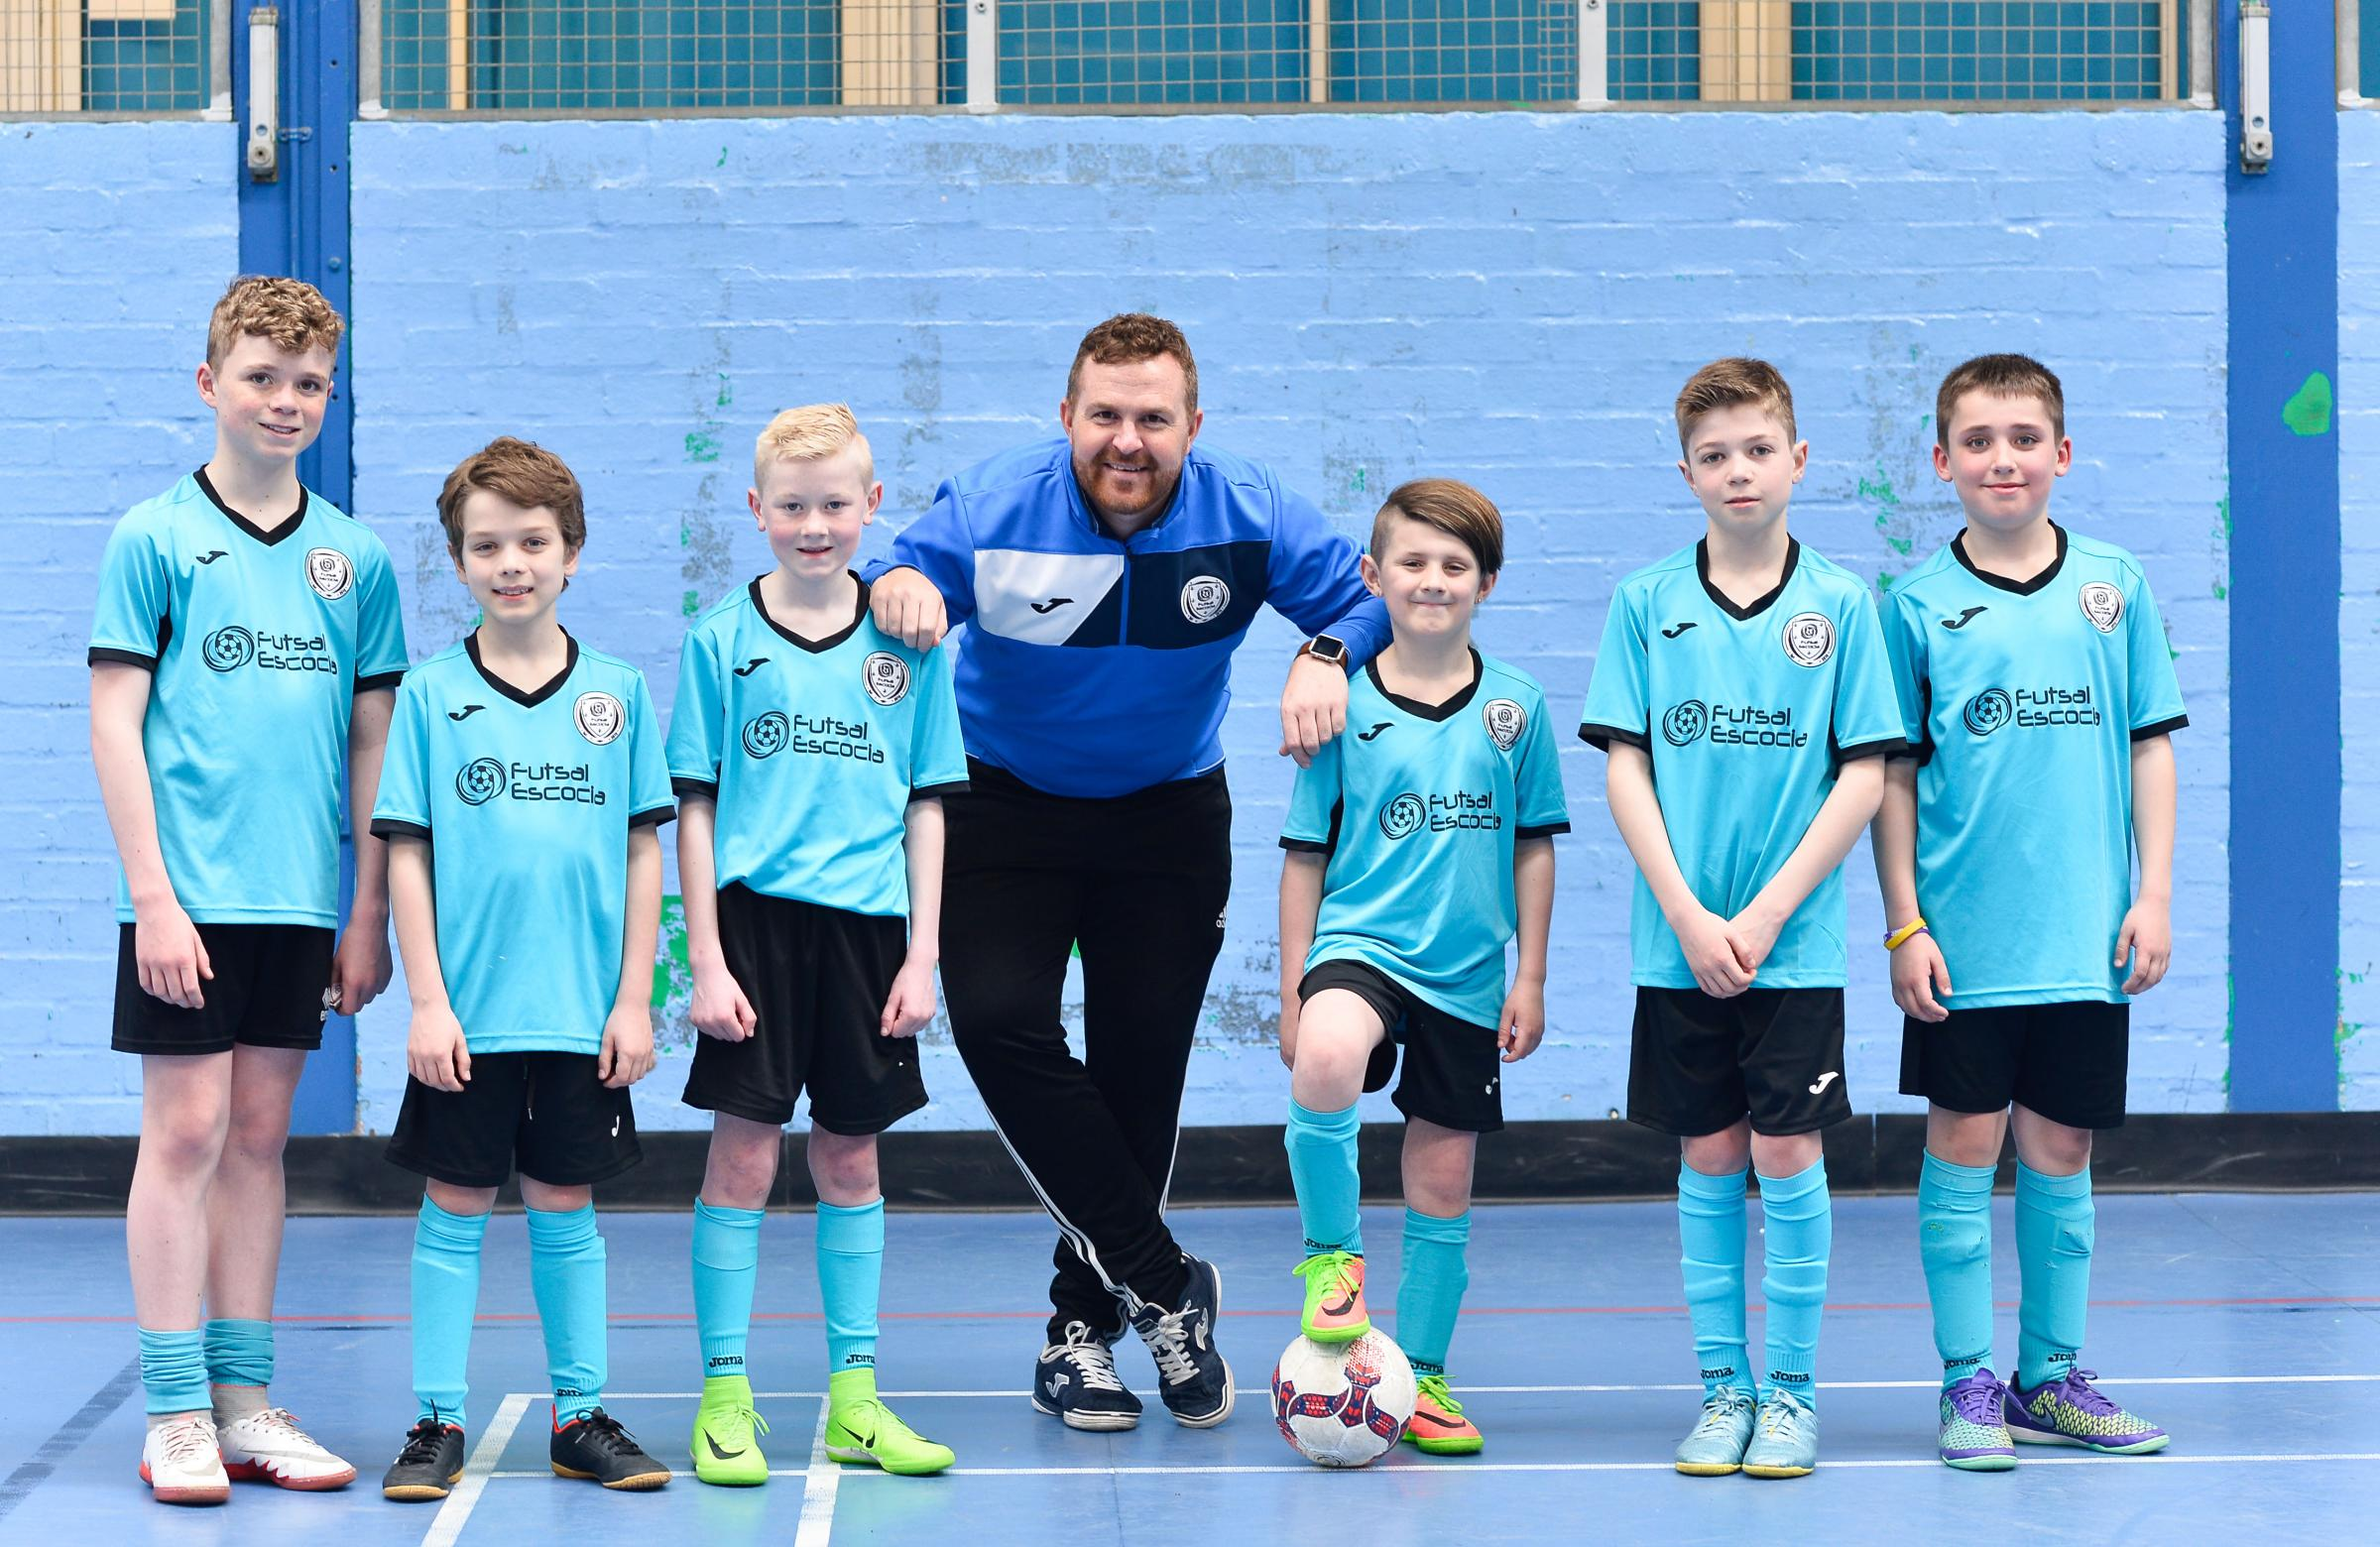 Former Dunfermline Athletic player Russell Taylor coaches children at Inverkeithing High School. Photo: Julie Howden